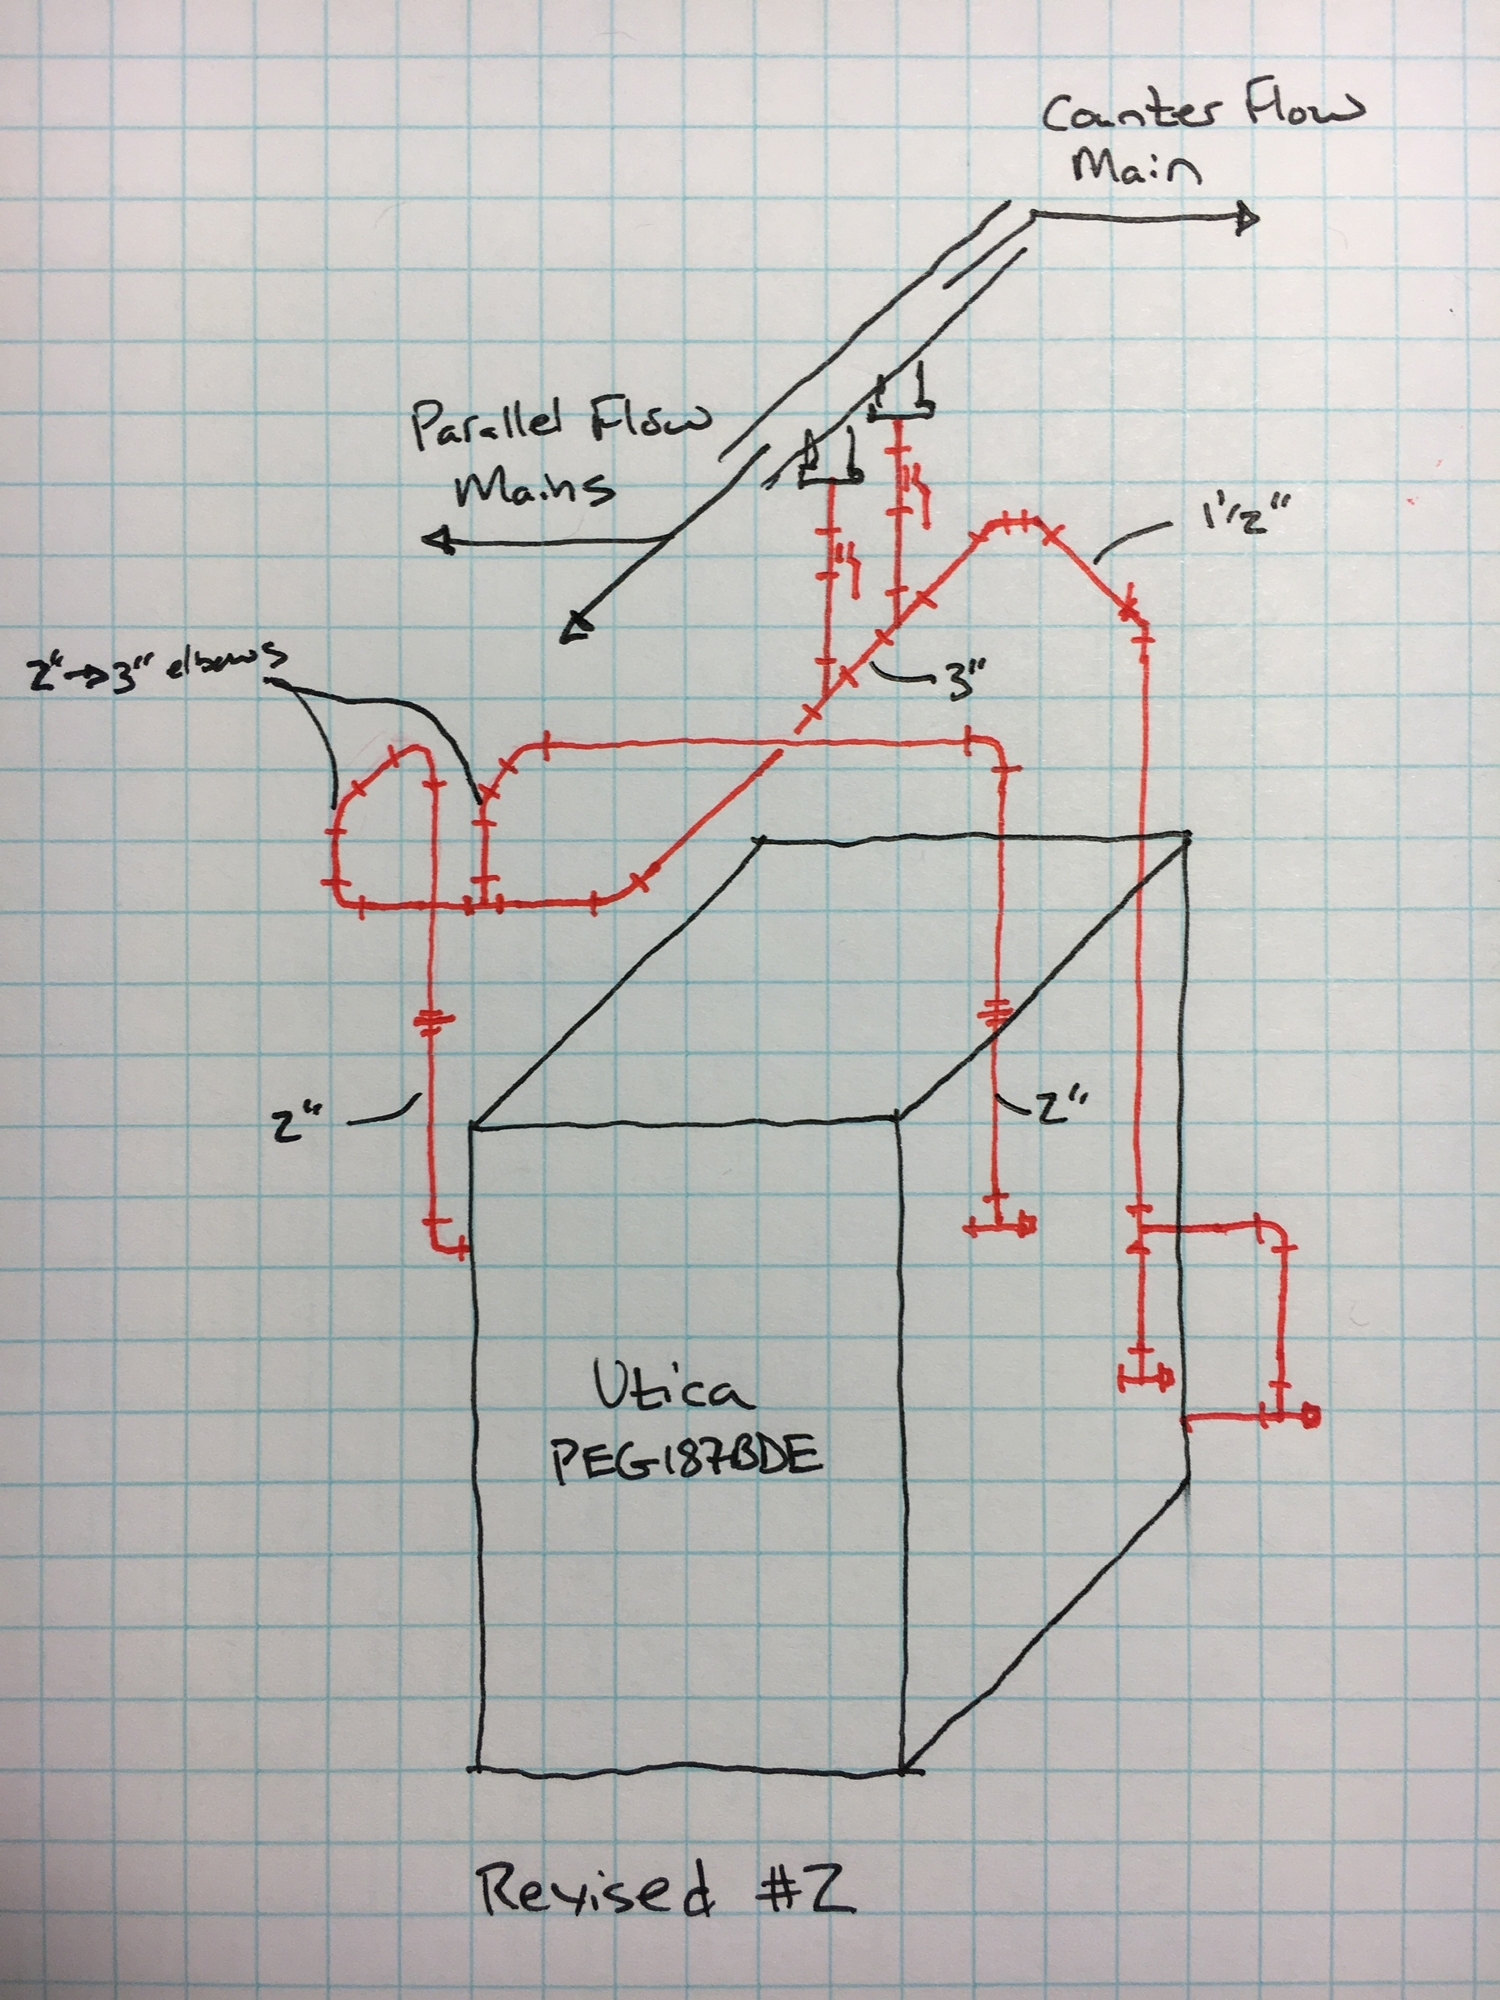 Utica Boiler Repipe Suggestions — Heating Help: The Wall on steam boiler piping schematic, furnace schematic diagram, rice cooker schematic diagram, hvac schematic diagram, motor schematic diagram, refrigeration schematic diagram, heat exchanger schematic diagram, compressor schematic diagram, heater schematic diagram, water softener schematic diagram, electrical schematic diagram, piping schematic diagram, turbine schematic diagram, filter schematic diagram, generator schematic diagram, grinder schematic diagram,